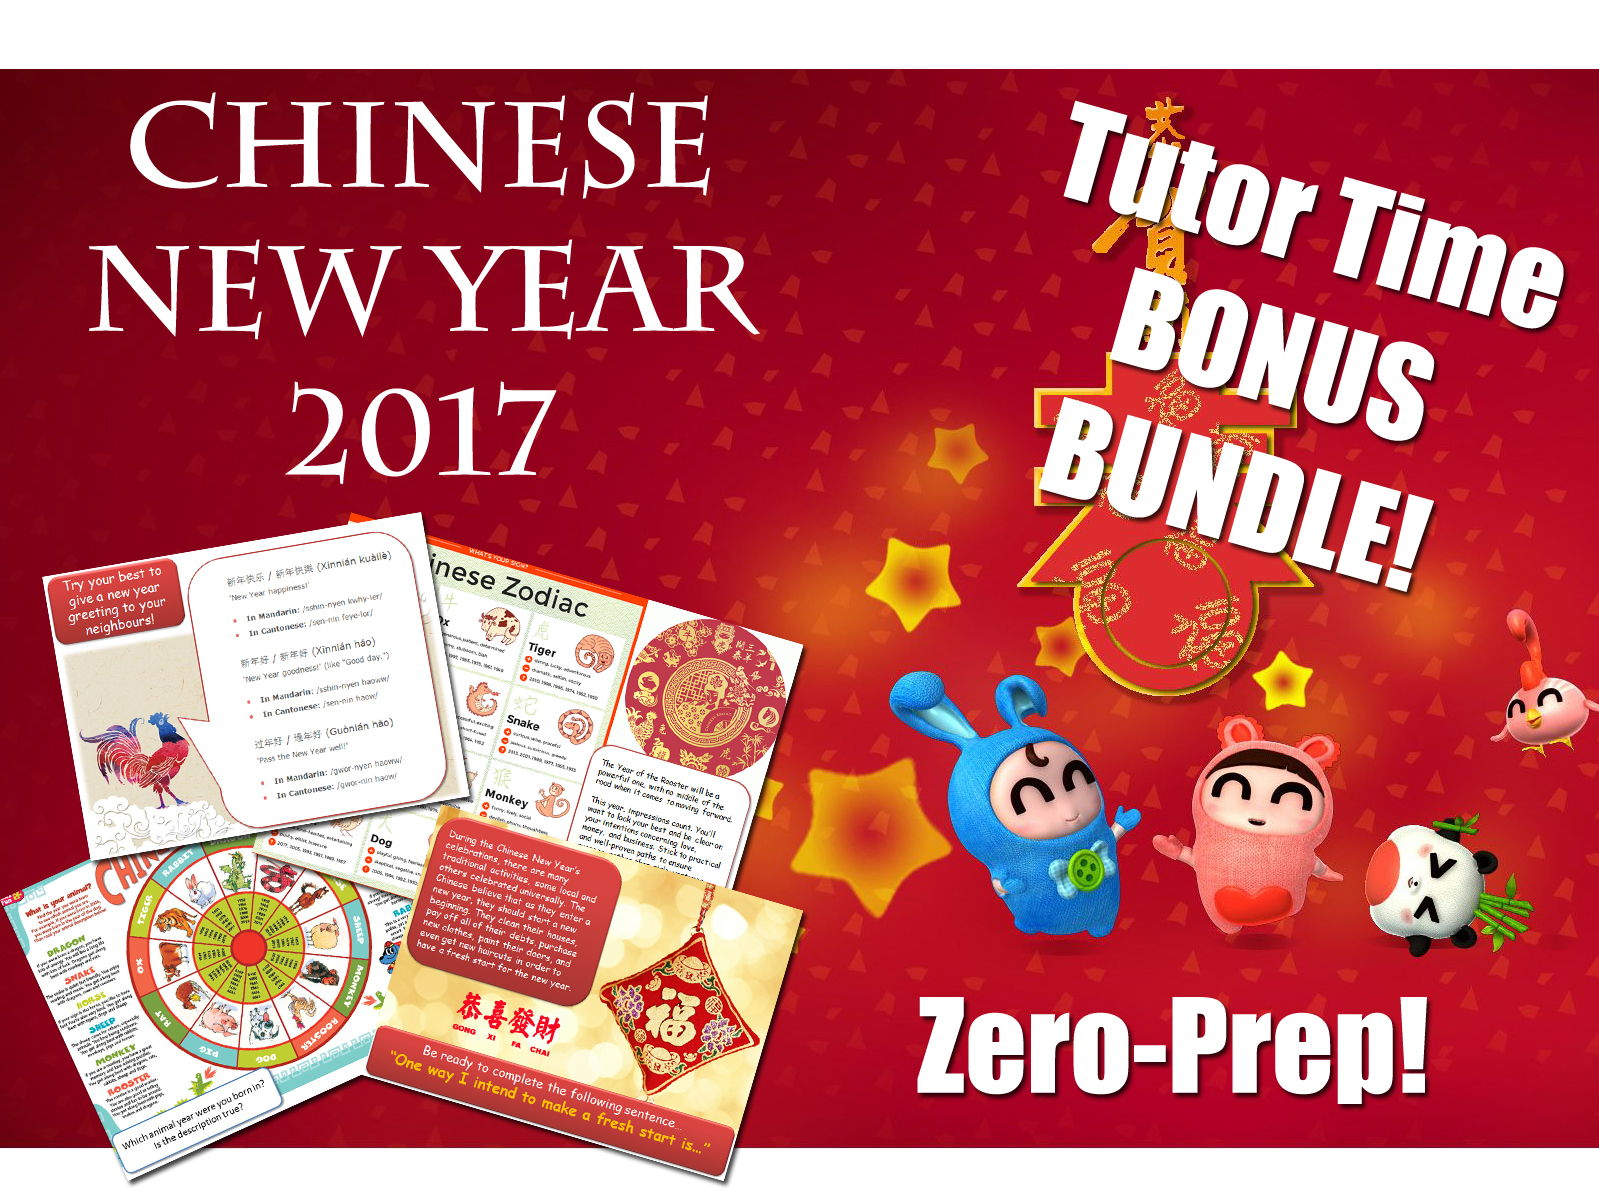 Chinese New Year 2017 - SPECIAL TUTOR RESOURCE PACK 2